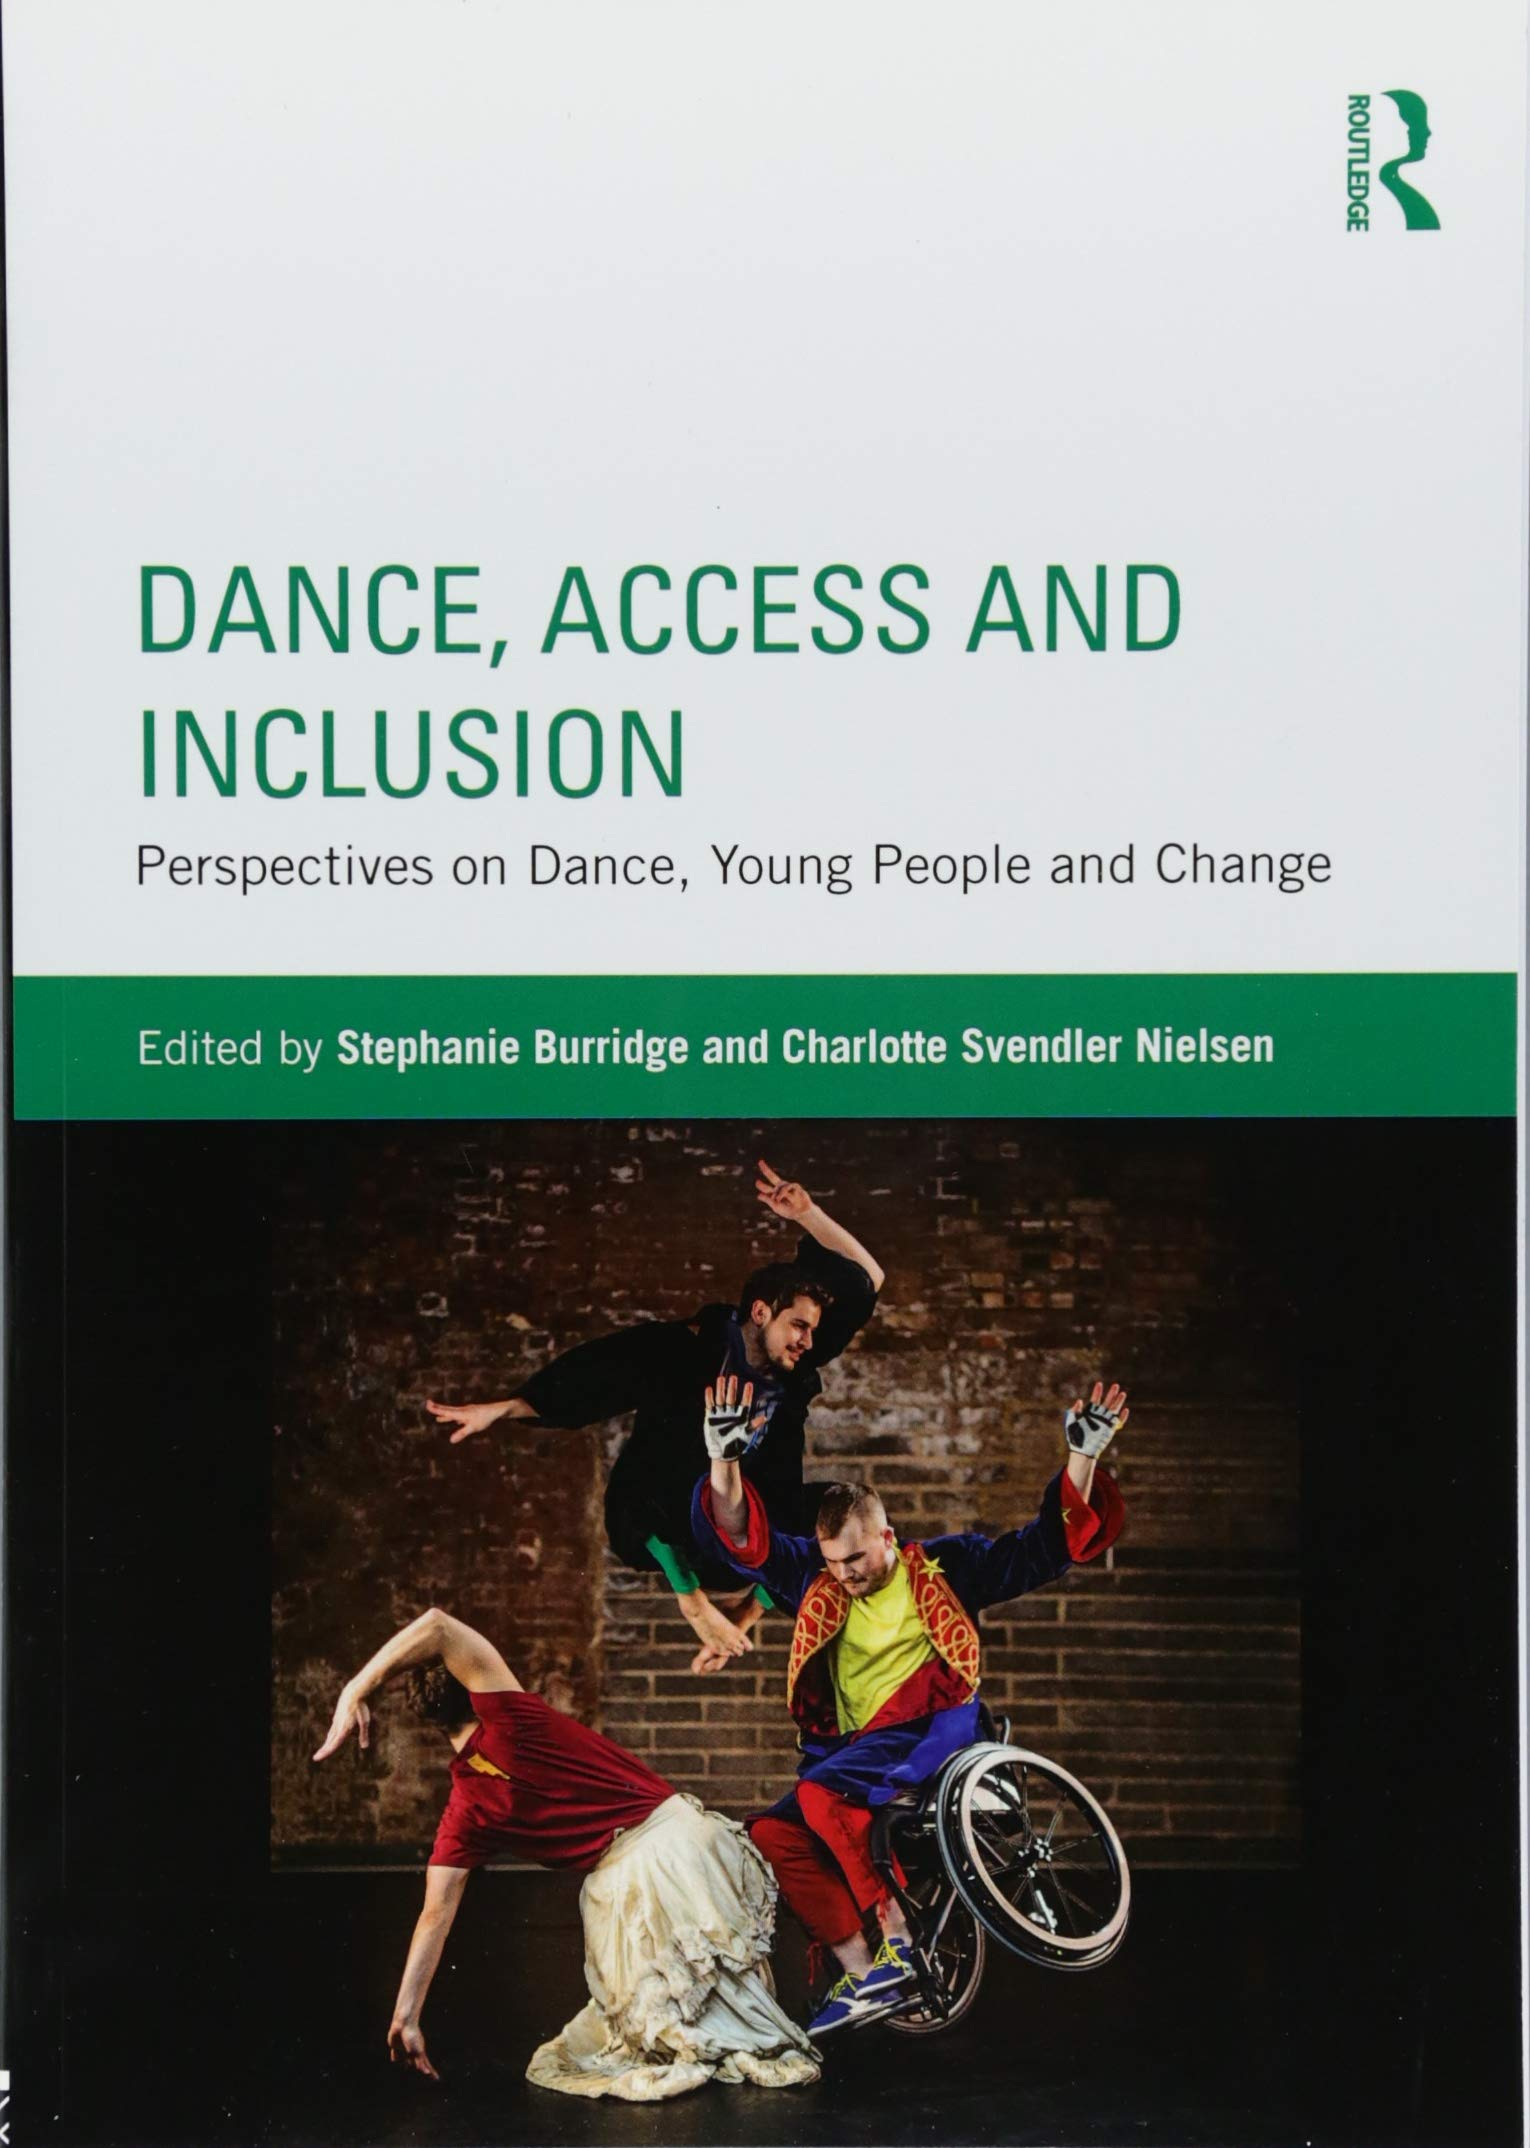 Dance, Access and Inclusion: Perspectives on Dance, Young People and Change: Amazon.es: Burridge, Stephanie, Nielsen, Charlotte Svendler: Libros en idiomas extranjeros